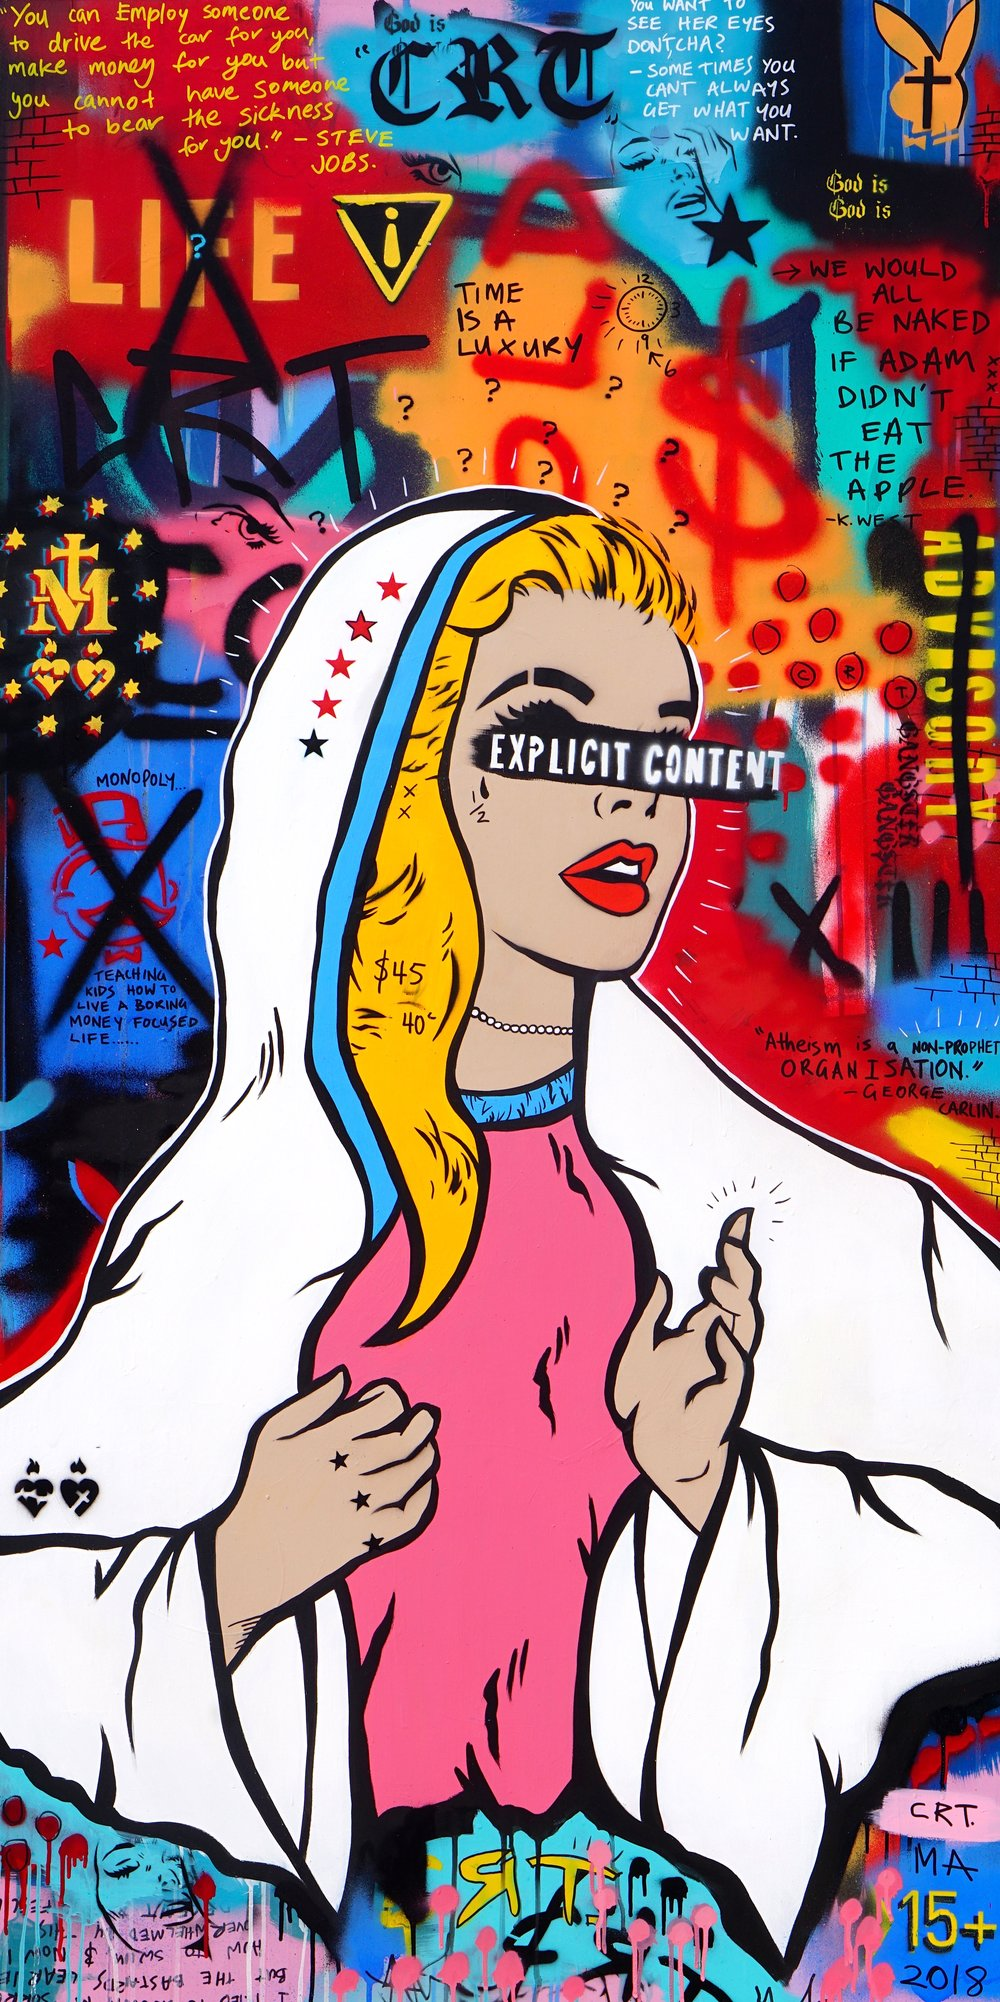 Explicit Content     'A Billionaire's Guide to Immortality'   92cm x 182cm Acrylic on Board 2018  Sold